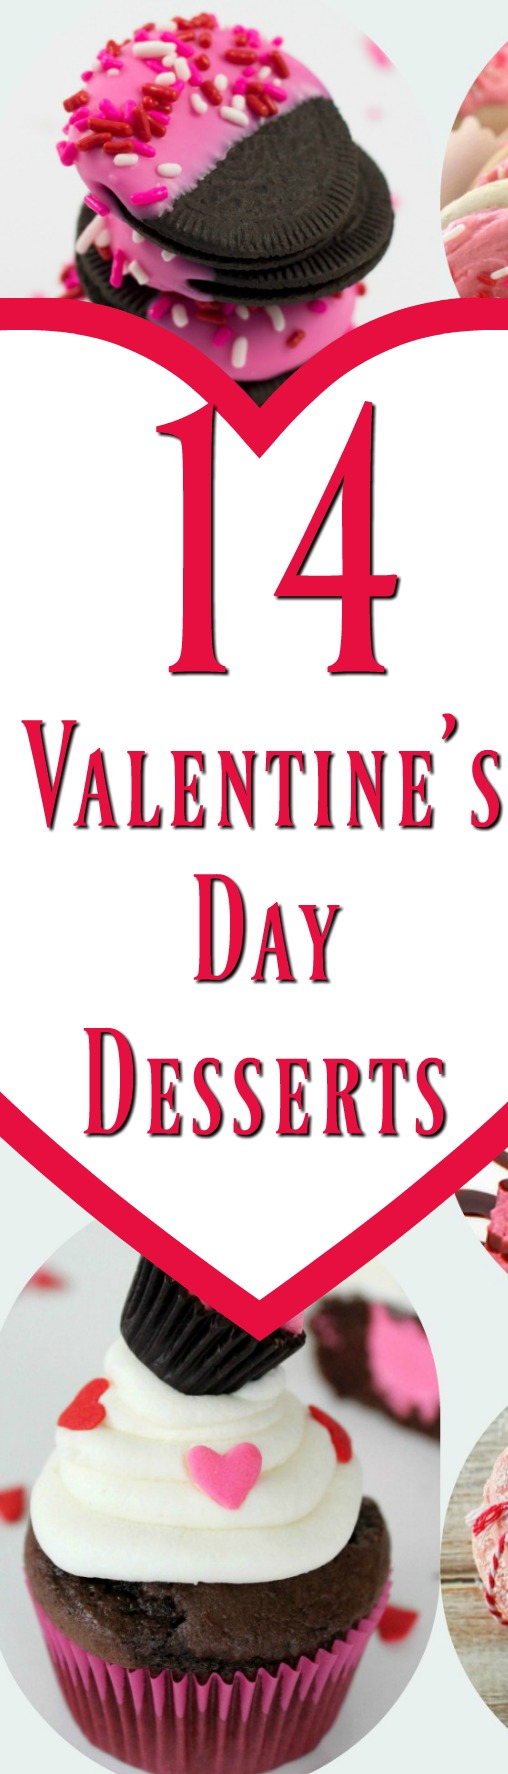 valentines-day-recipes-dessert-sweet-treats-pin.jpg